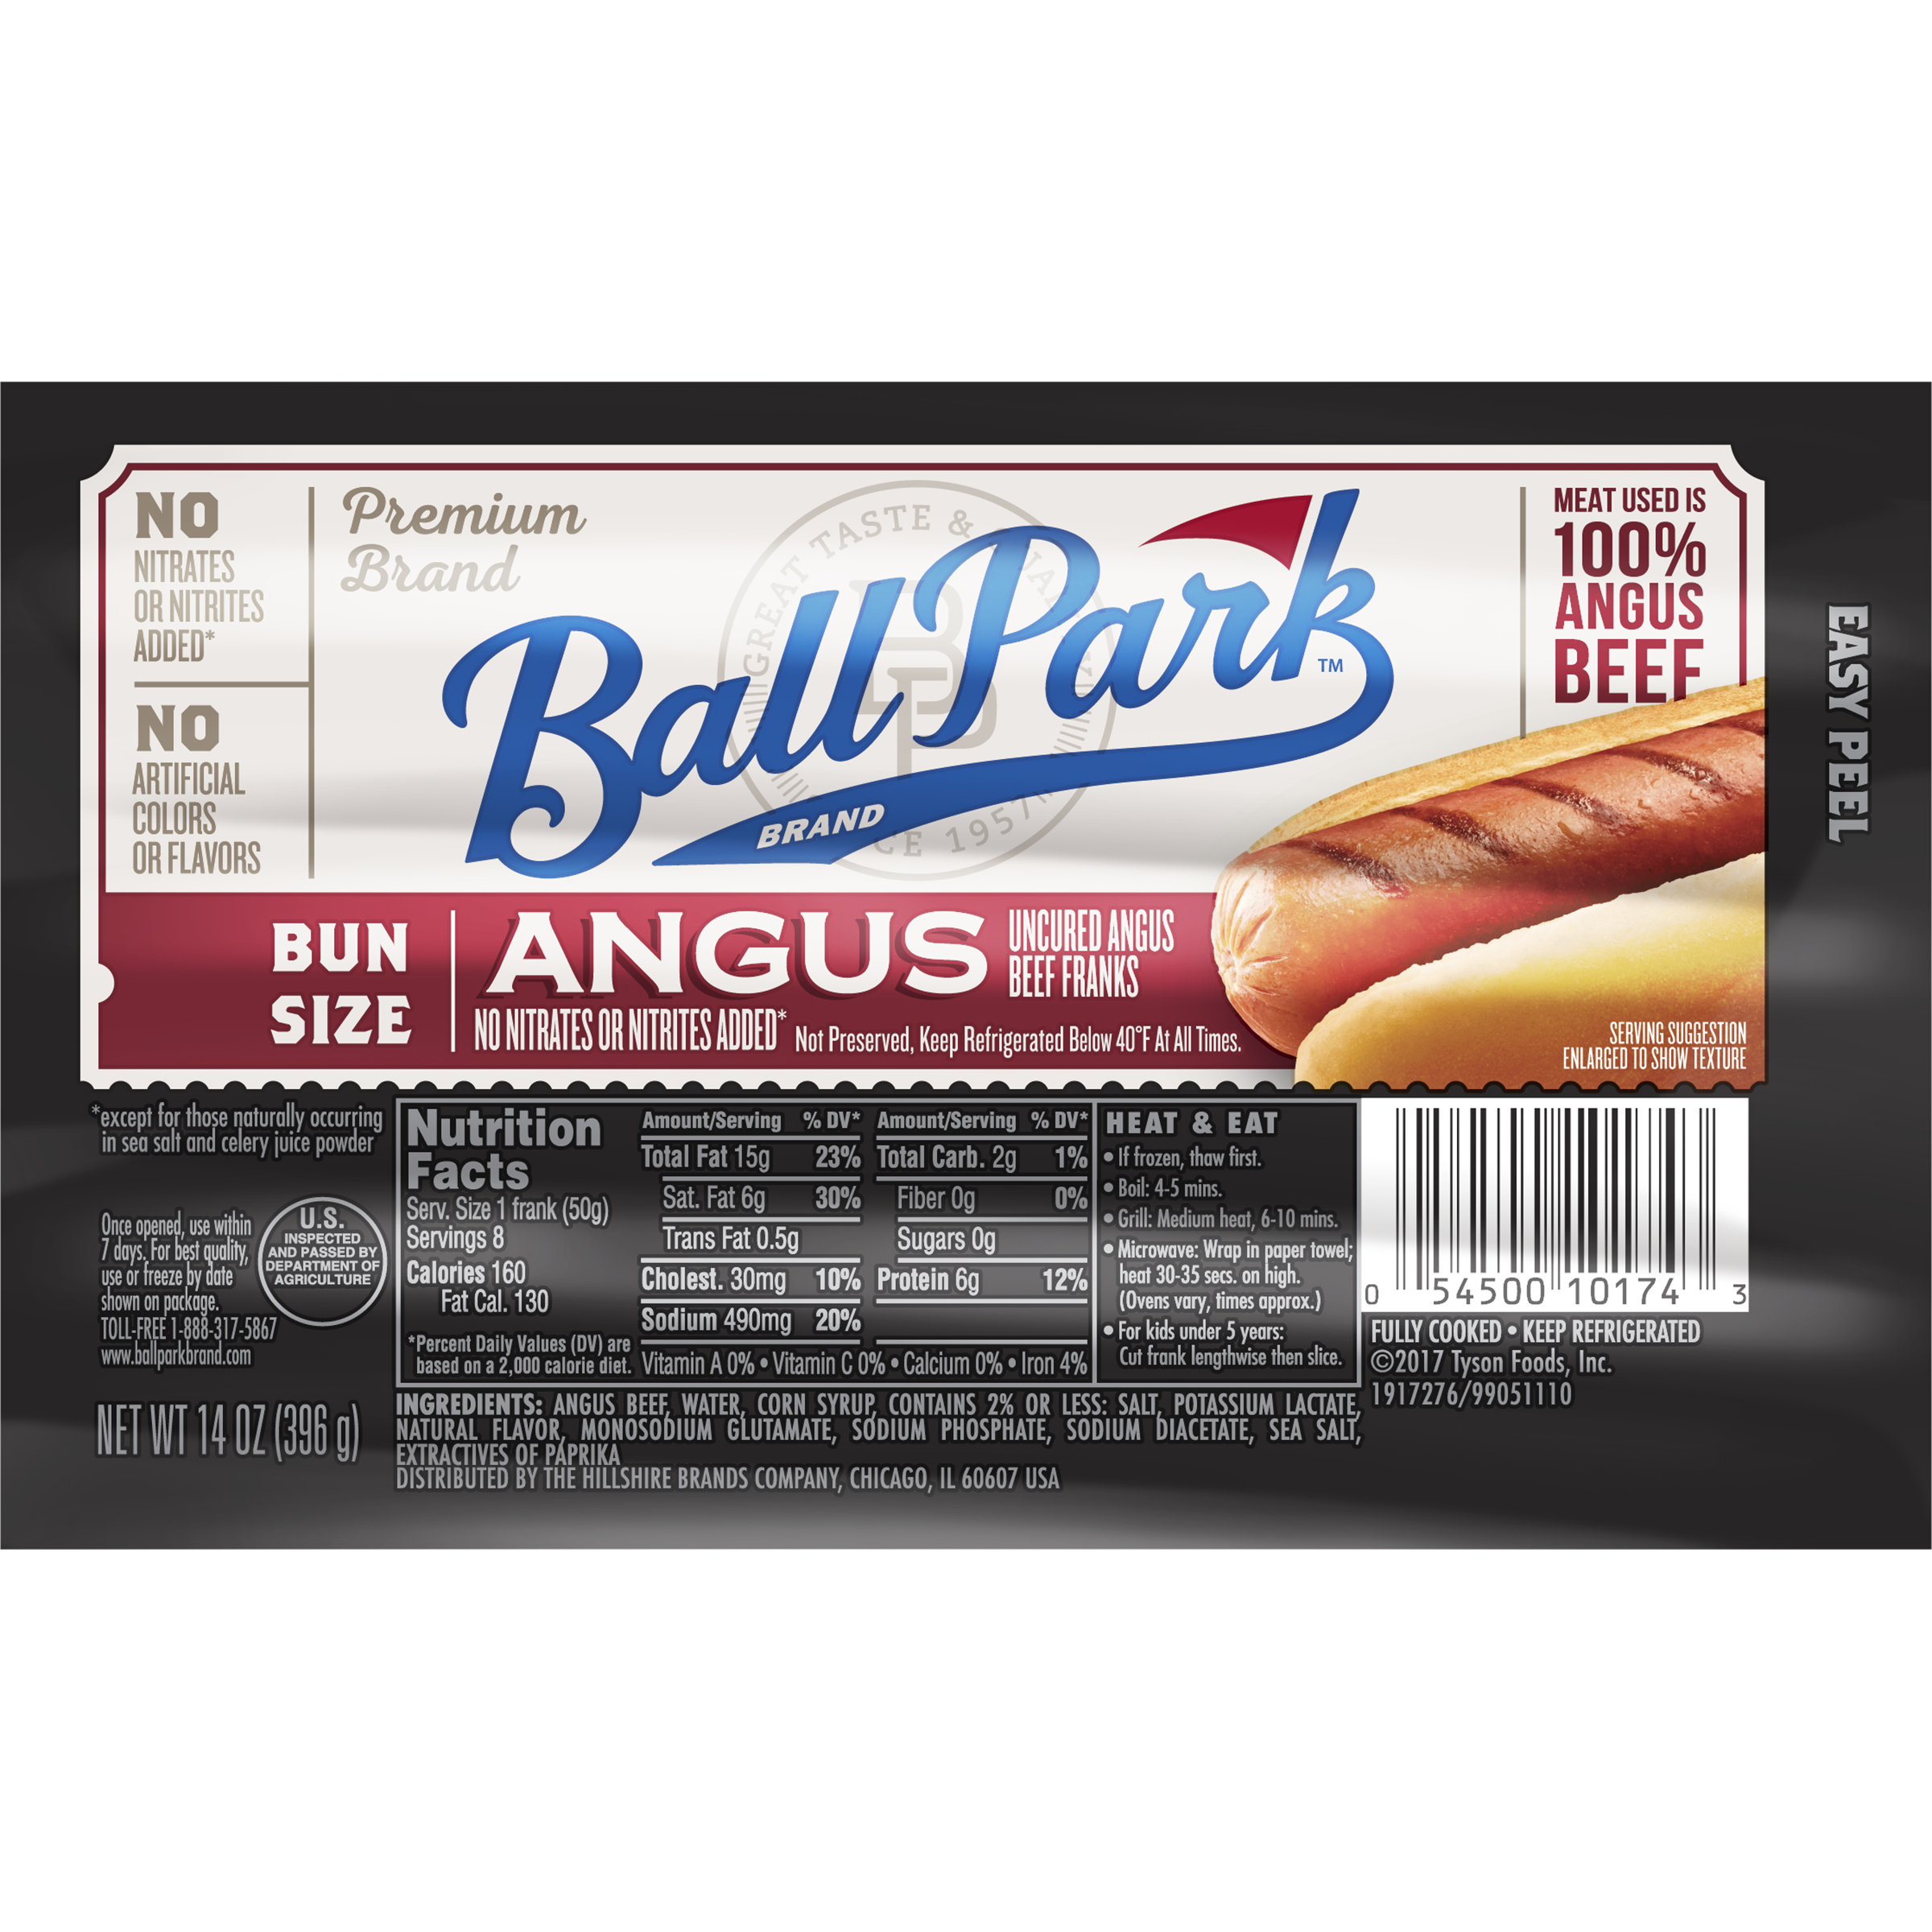 Ball Park® Angus Beef Franks, Bunsize Length, 8 Count